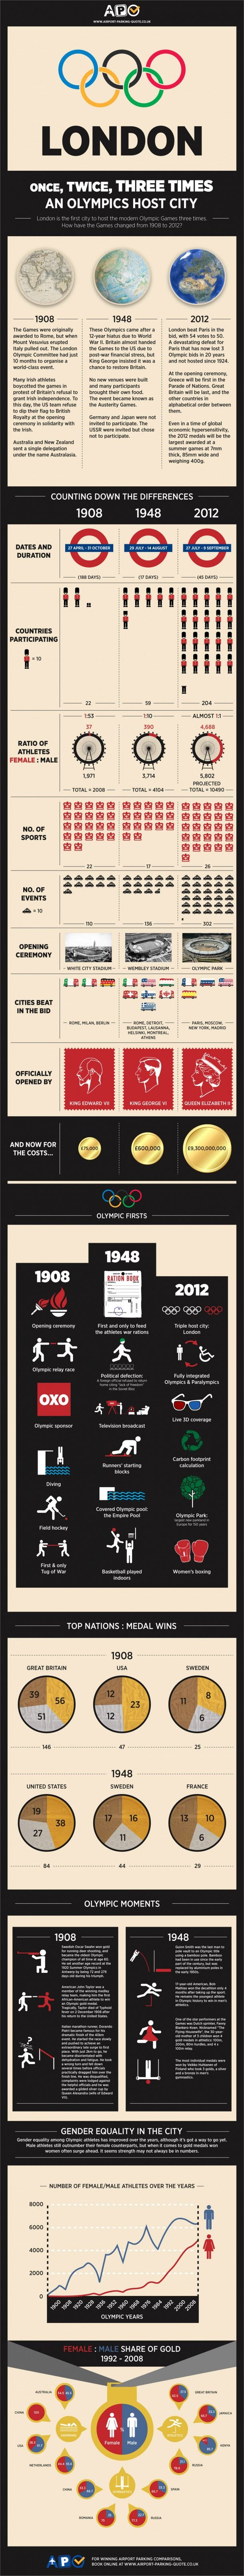 Love this infographic on London as an Olympic host city. Can't imagine how crazy its going to be in just a few short weeks!